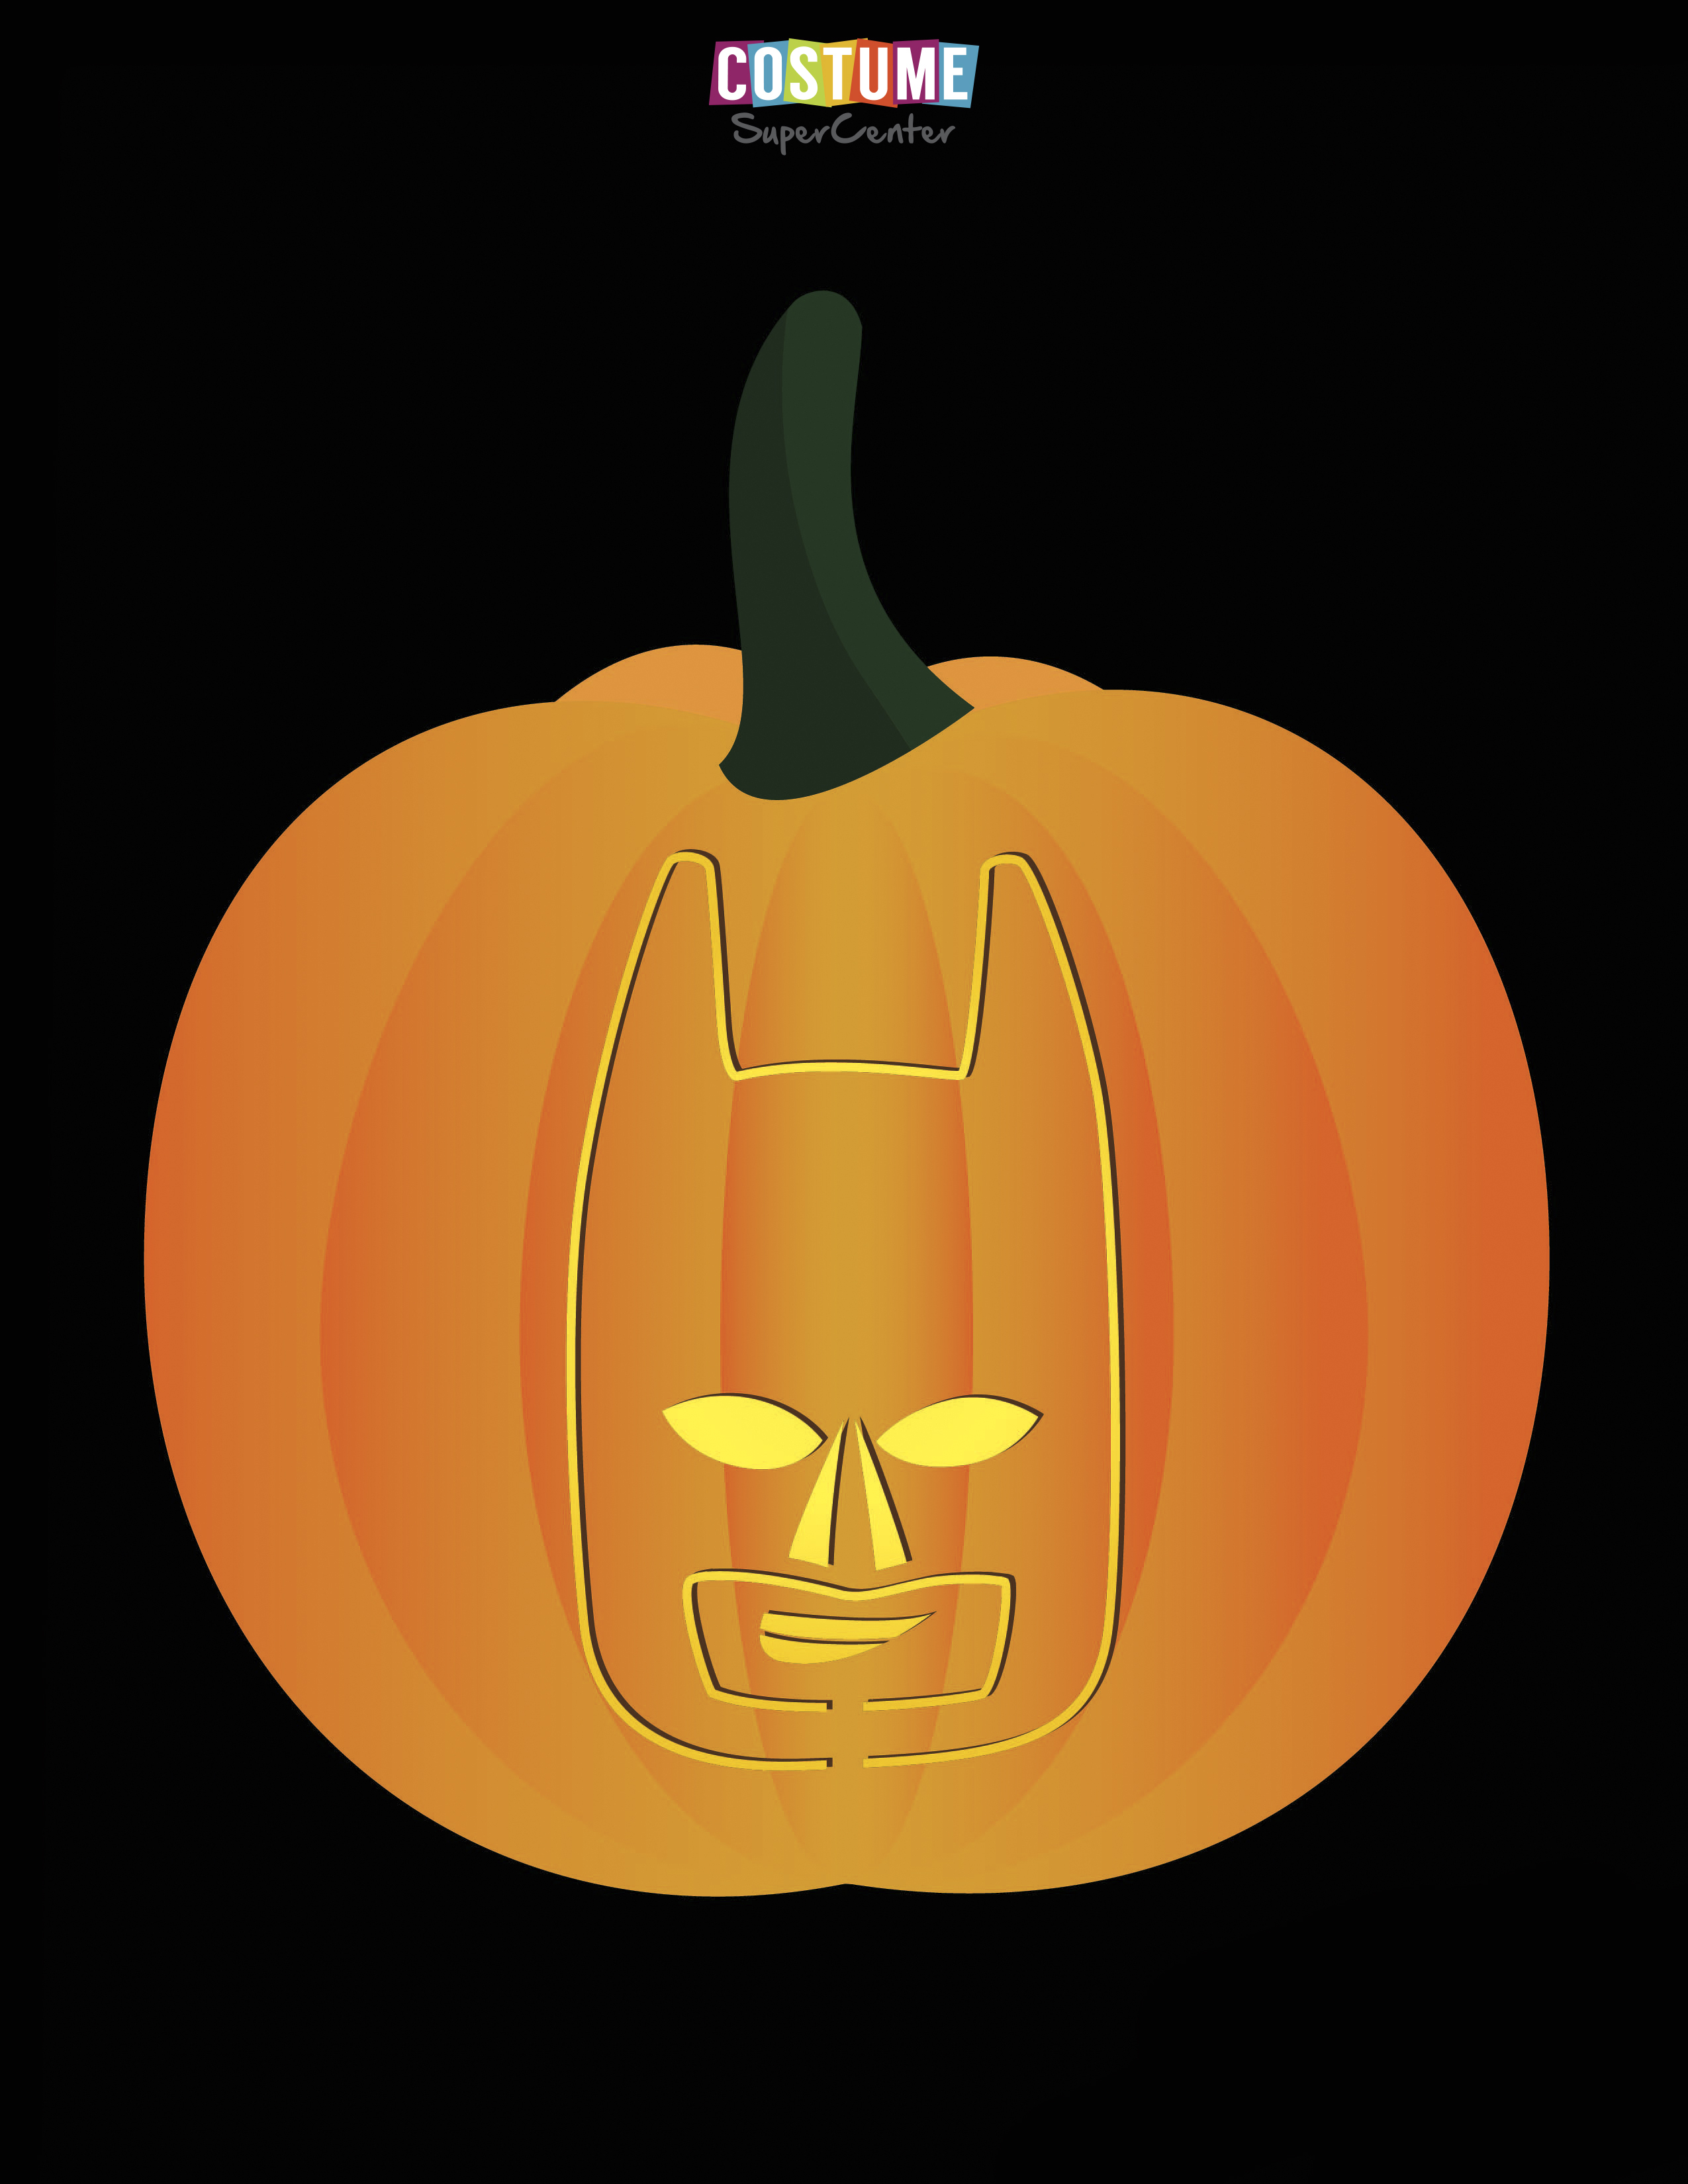 Fun And Free Printable Themed Pumpkin Carving Stencils — All For The - Halloween Pumpkin Carving Stencils Free Printable